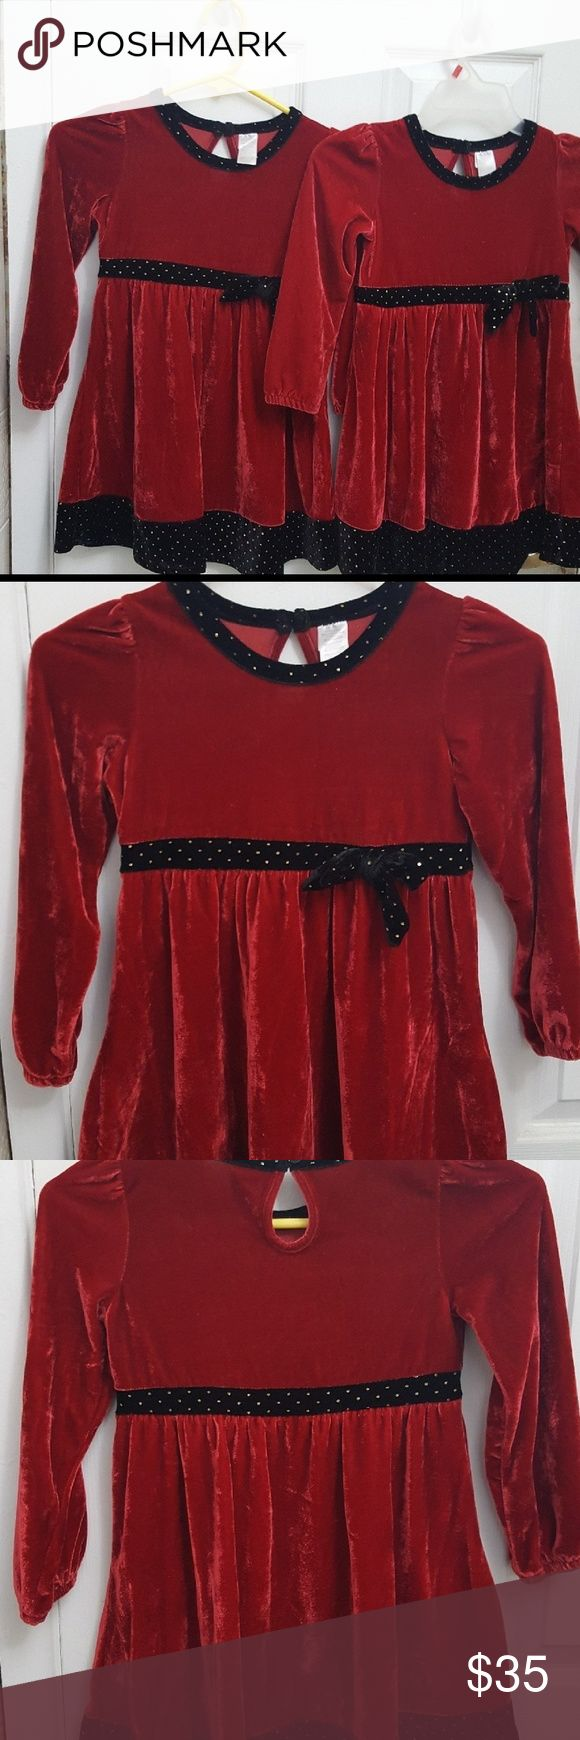 *BUNDLE* velvet Christmas dresses for twins Velvet Christmas Dresses Like brand new Matching from my twins  Wore 2x, 1 for pictures, 1 for family gathering.  Wore approx 1 hour each time.  This posting is for BOTH DRESSES   **sorry no other price reduction unless bundled. ** These were quite expensive dresses Gymboree Dresses Formal